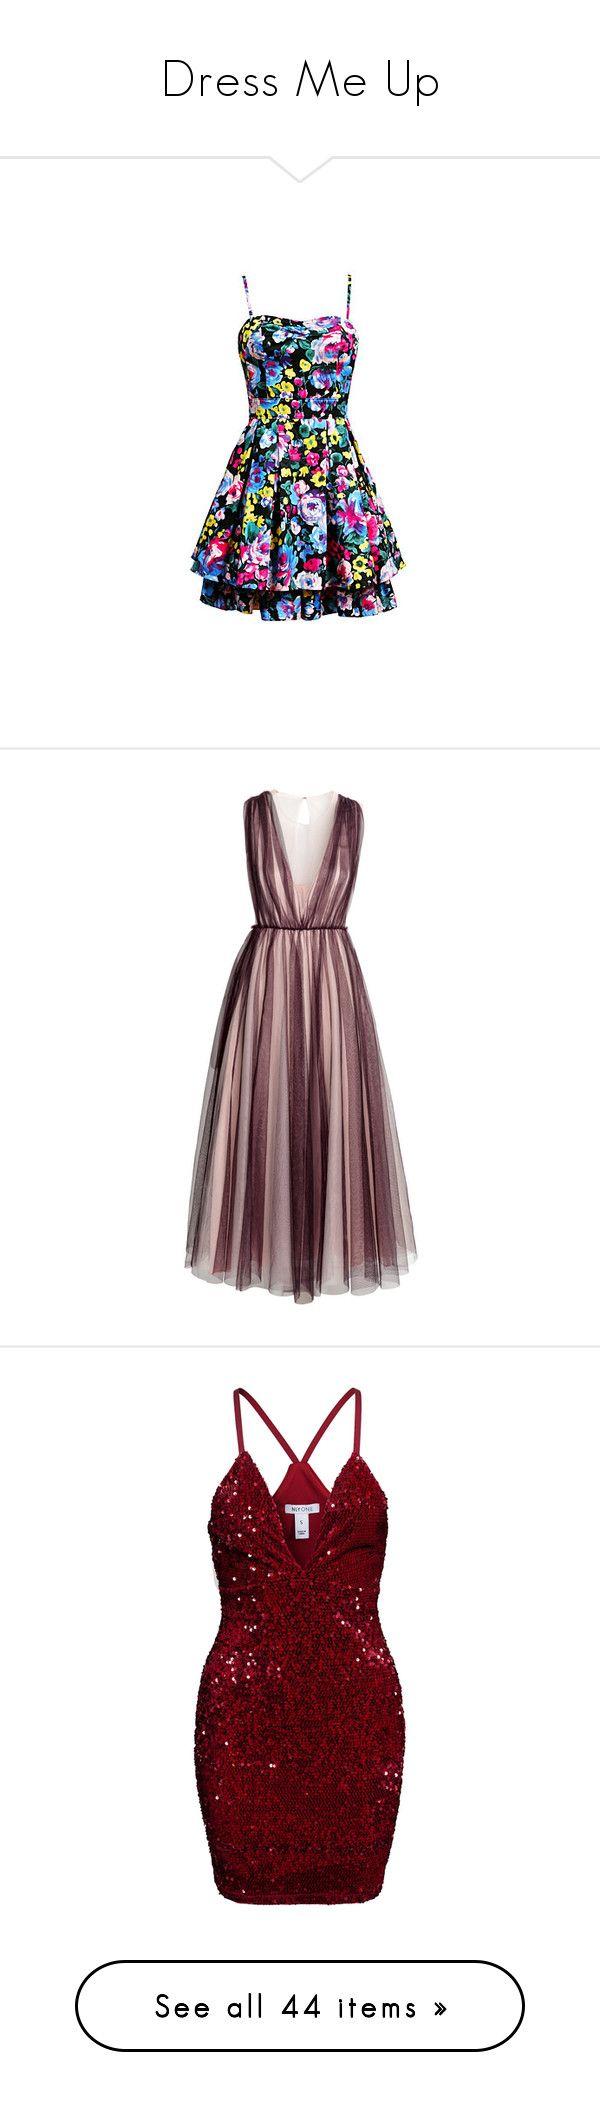 """""""Dress Me Up"""" by lizf99 ❤ liked on Polyvore featuring dresses, vestidos, short dresses, sukienki, mini dress, h&m dresses, gowns, long dresses, brown gown and brown evening dress"""